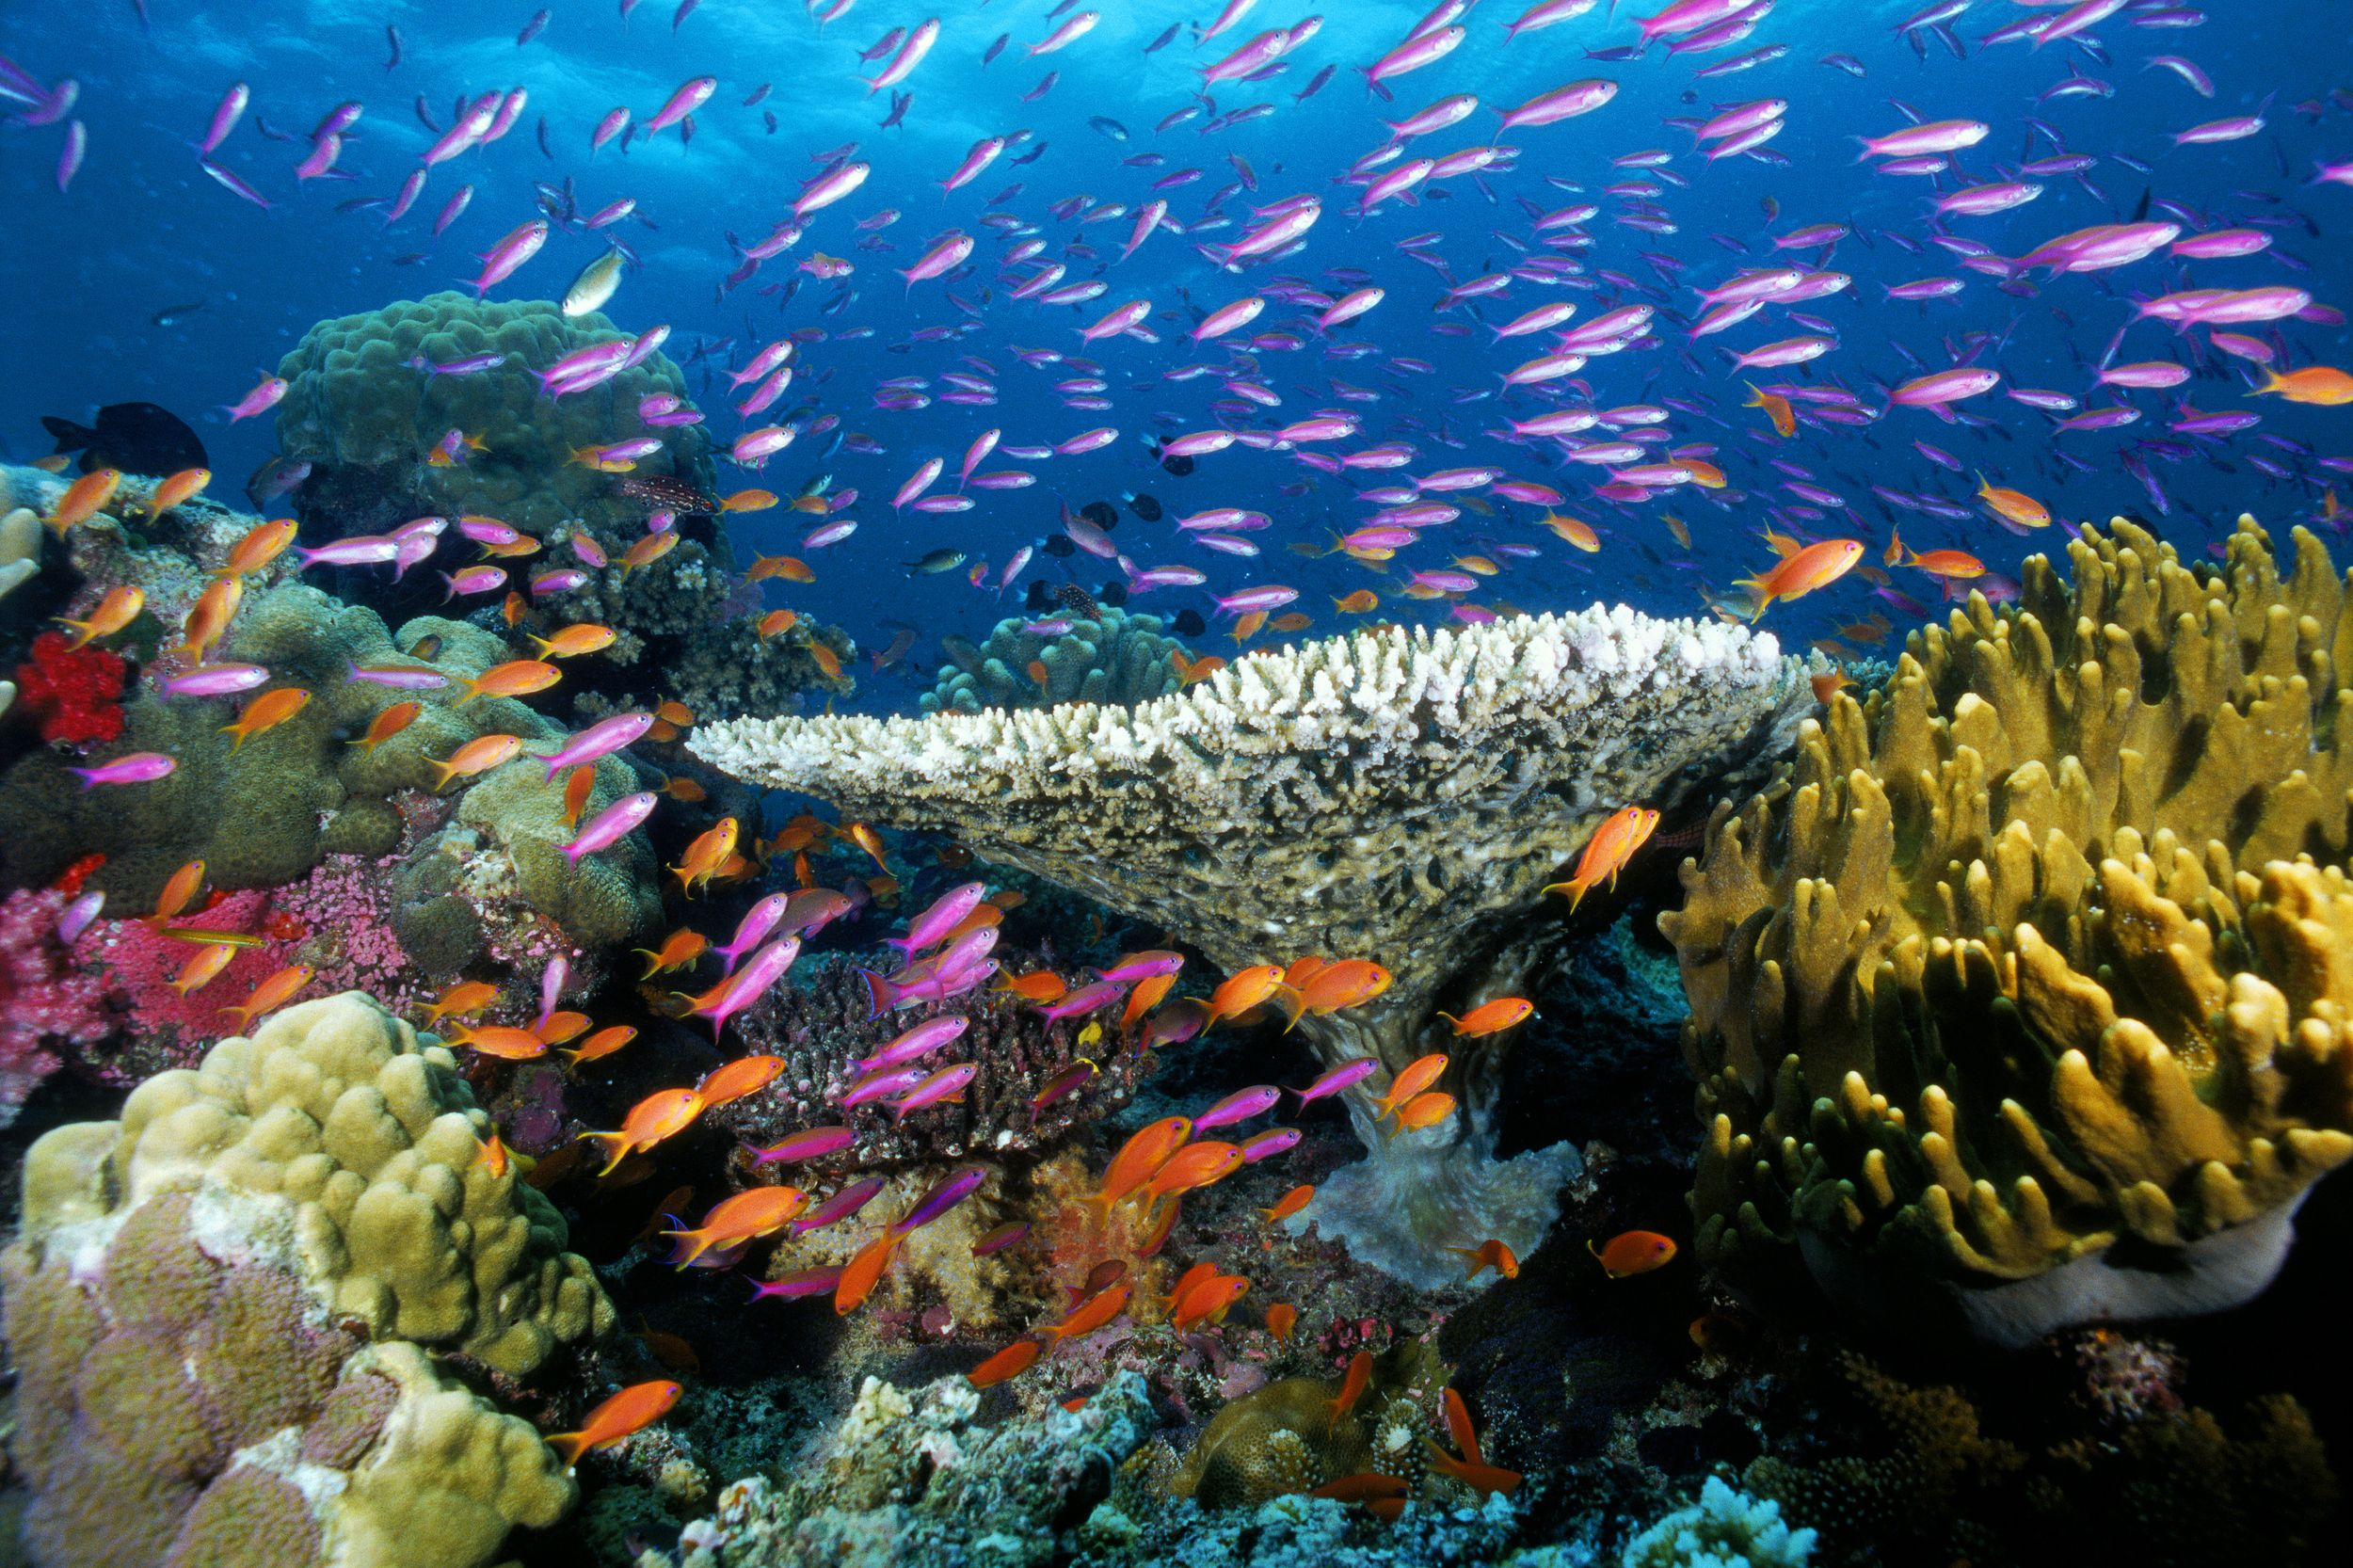 Beautiful-Coral-Reef-Fish-picspaper-com.jpg (2500×1666 ...